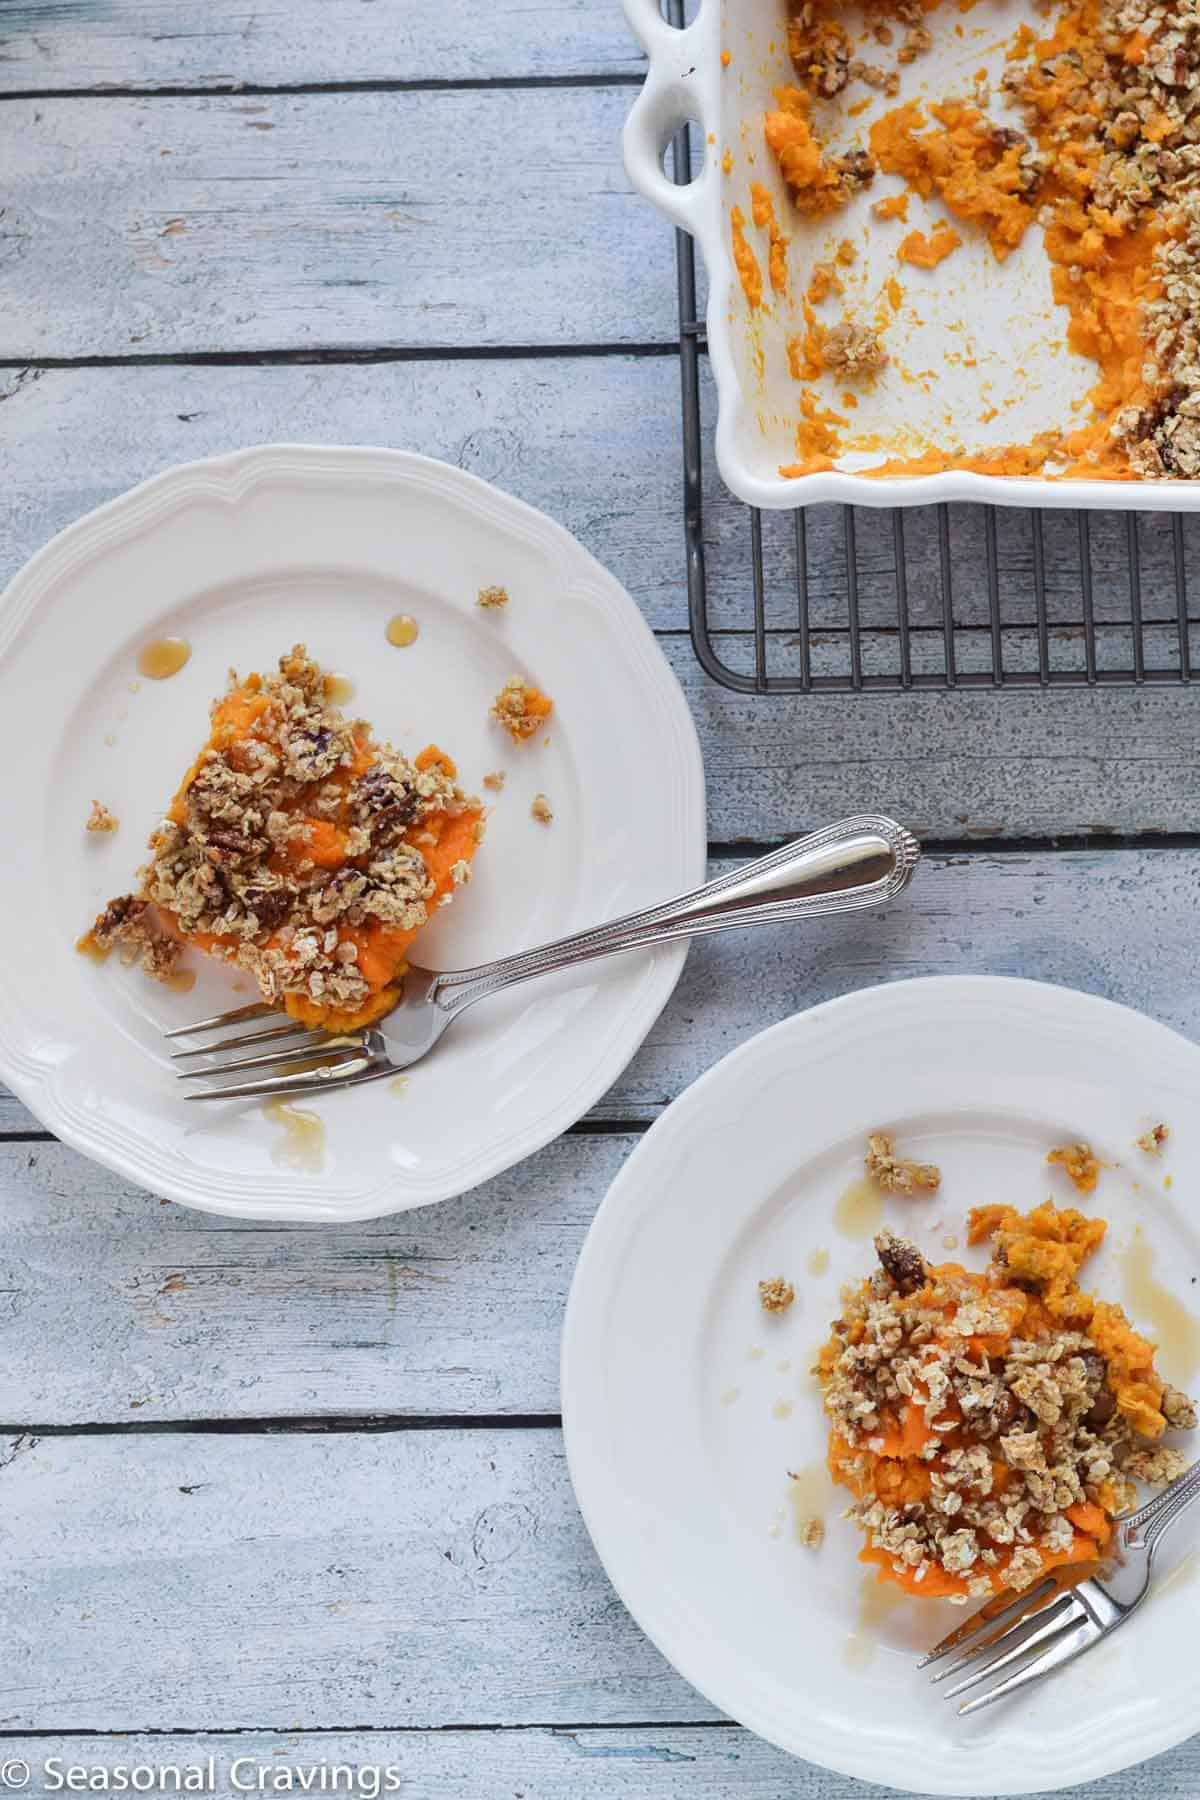 Gluten Free Sweet Potato Casserole topped with oatmeal crumb topping on white serving plates